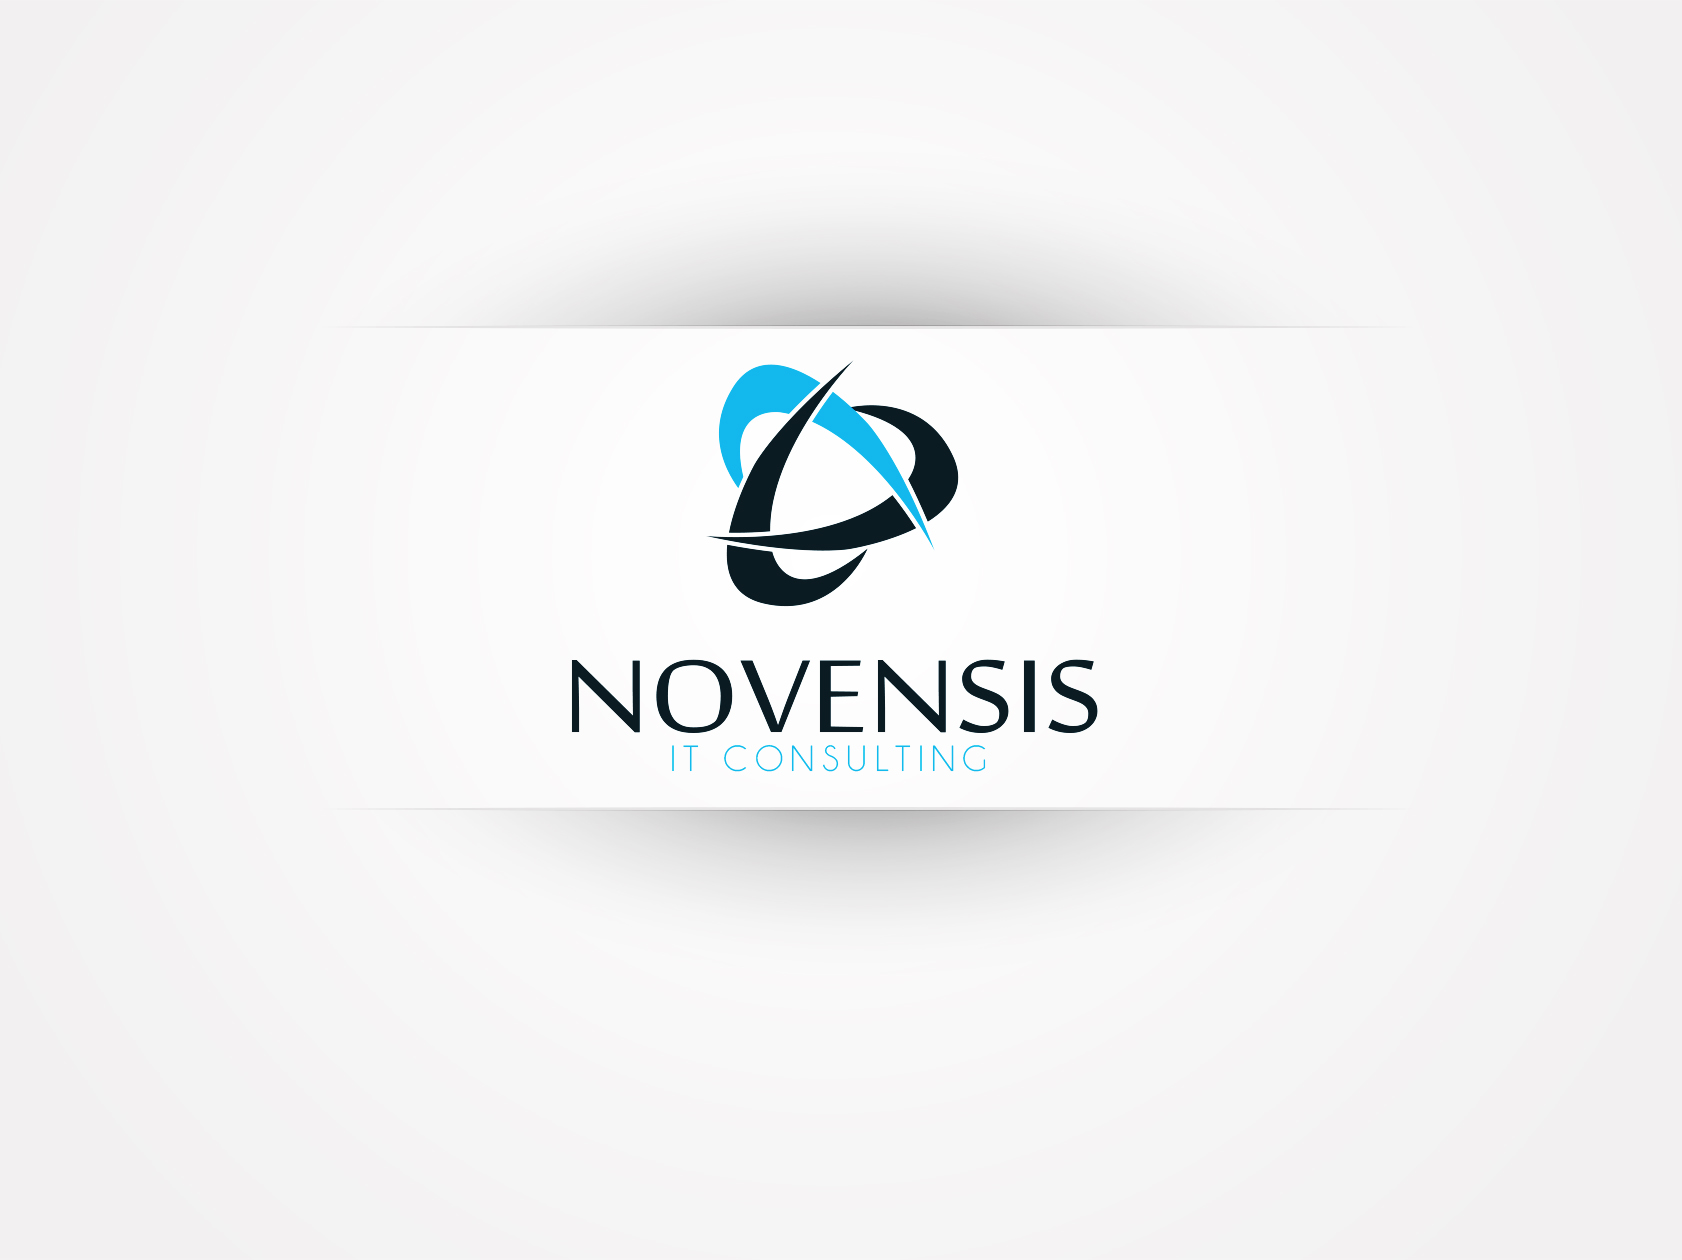 Logo Design by OmegaDesigns - Entry No. 155 in the Logo Design Contest Novensis Logo Design.